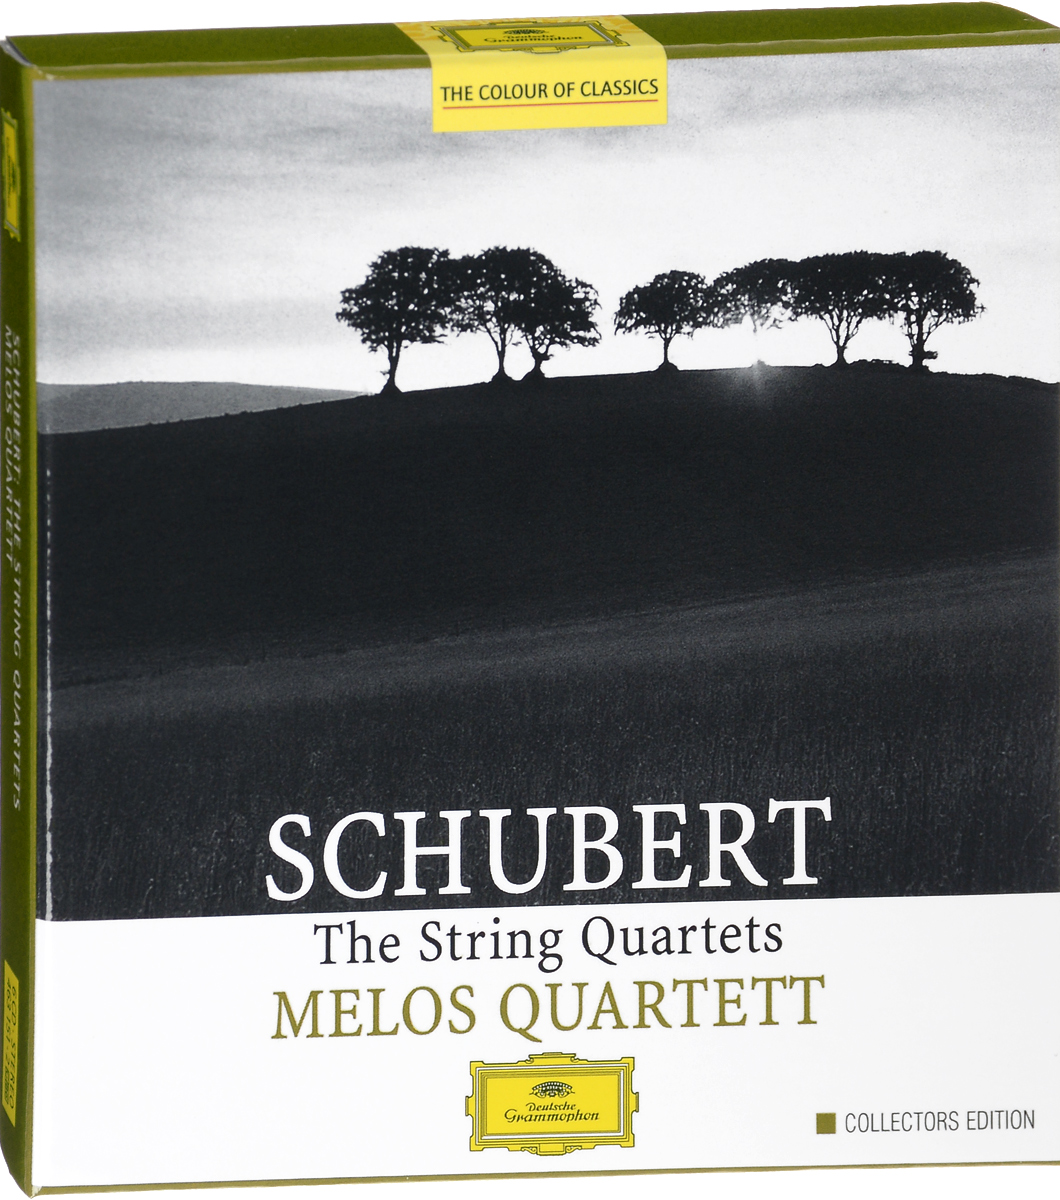 Melos Quartett Schubert. Melos Quartet Schubert. The String Quartets (6 CD) novak quartet franz schubert string quartet in g major op 161 lp